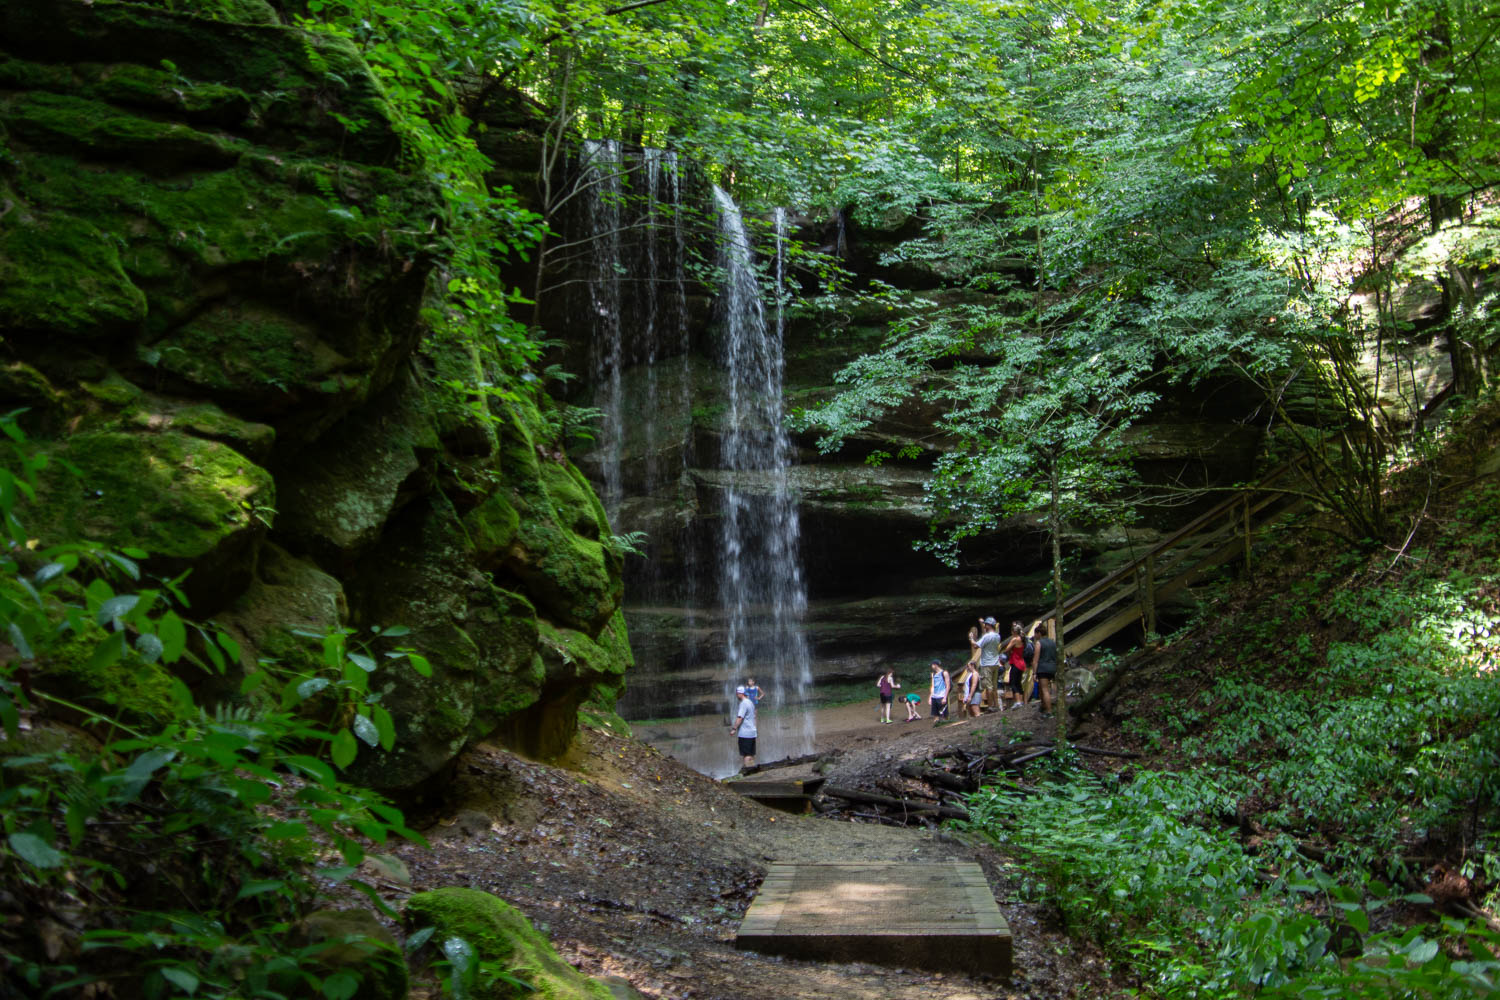 Big Lyons Fall at Mohican State Park in Ohio.